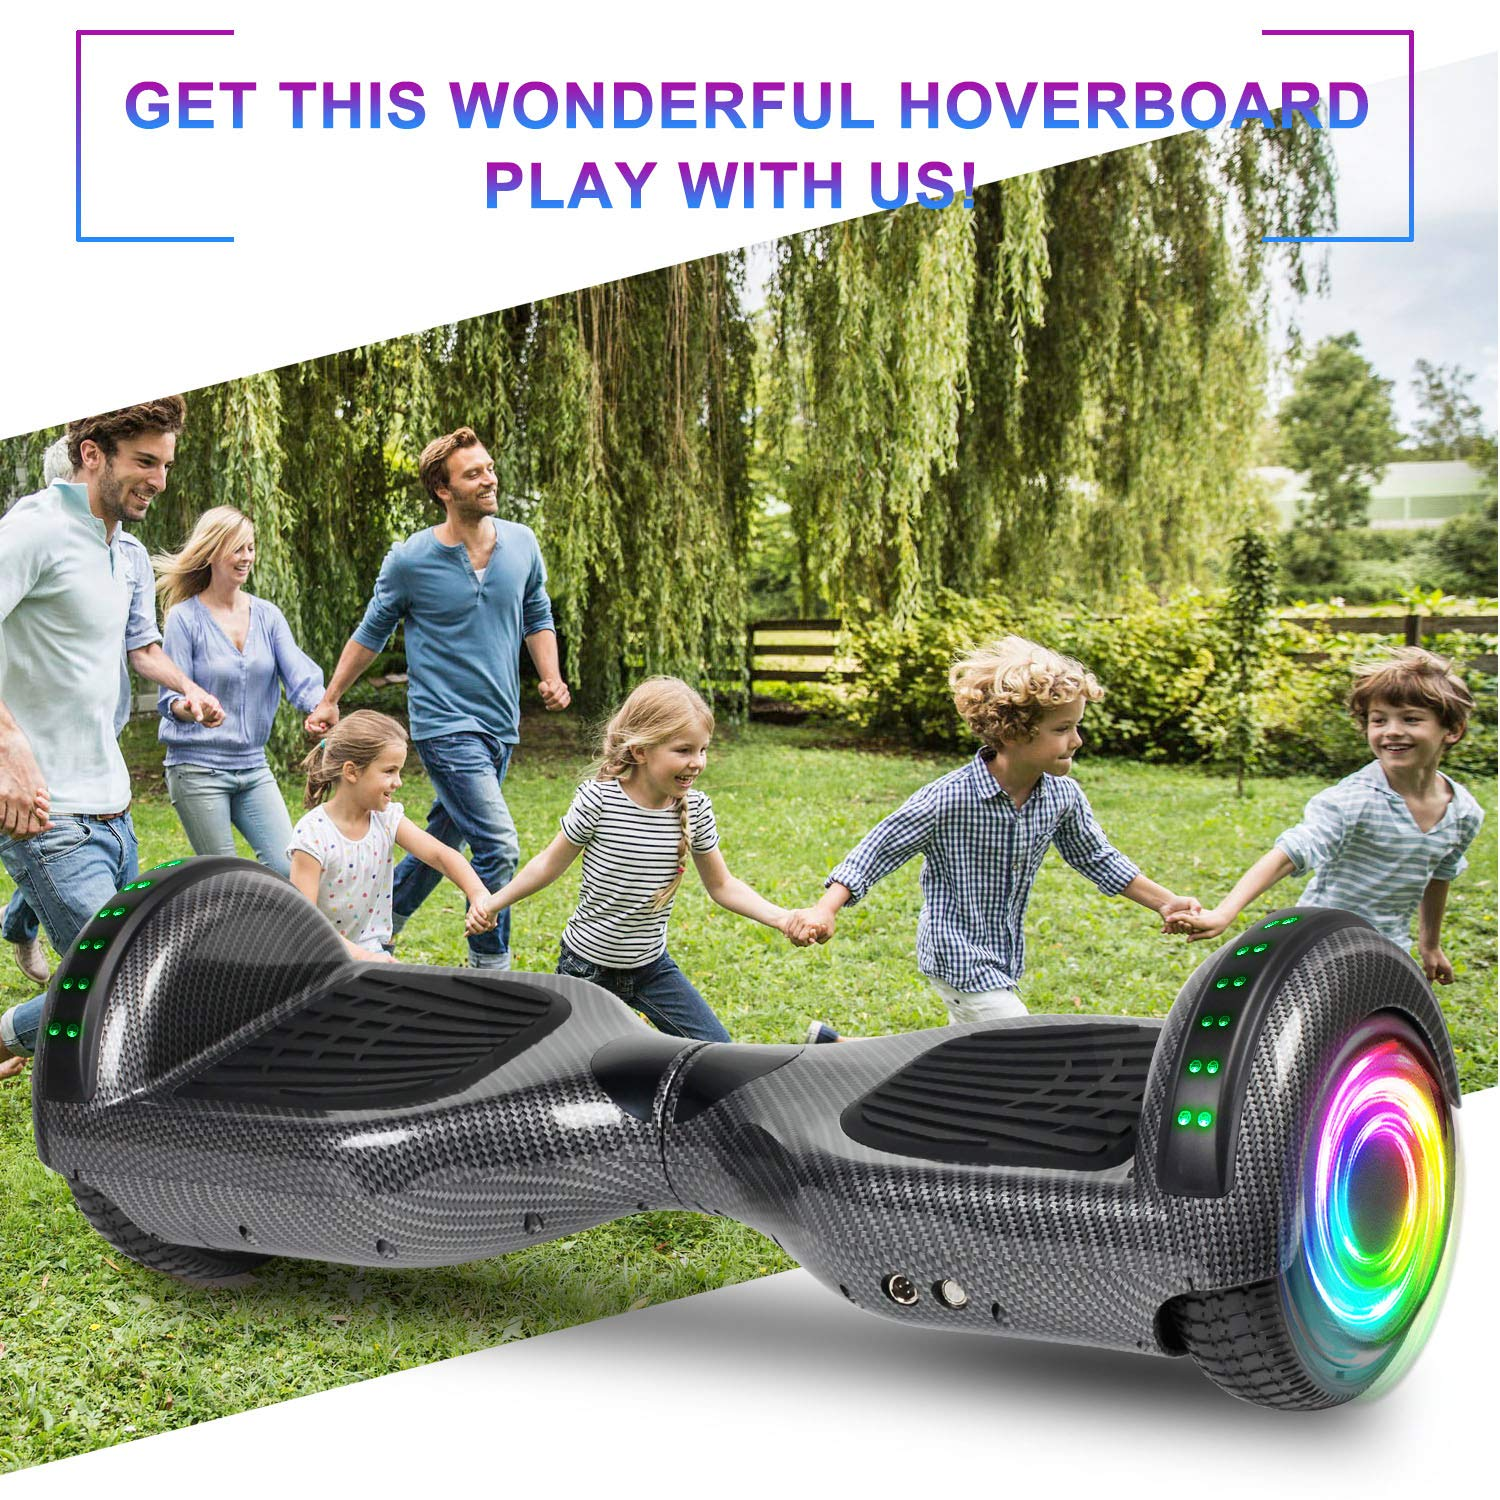 SISIGAD Hoverboard Self Balancing Scooter 6.5'' Two-Wheel Self Balancing Hoverboard with Bluetooth Speaker and LED Lights Electric Scooter for Adult Kids Gift UL 2272 Certified - Carbon Black by SISIGAD (Image #7)